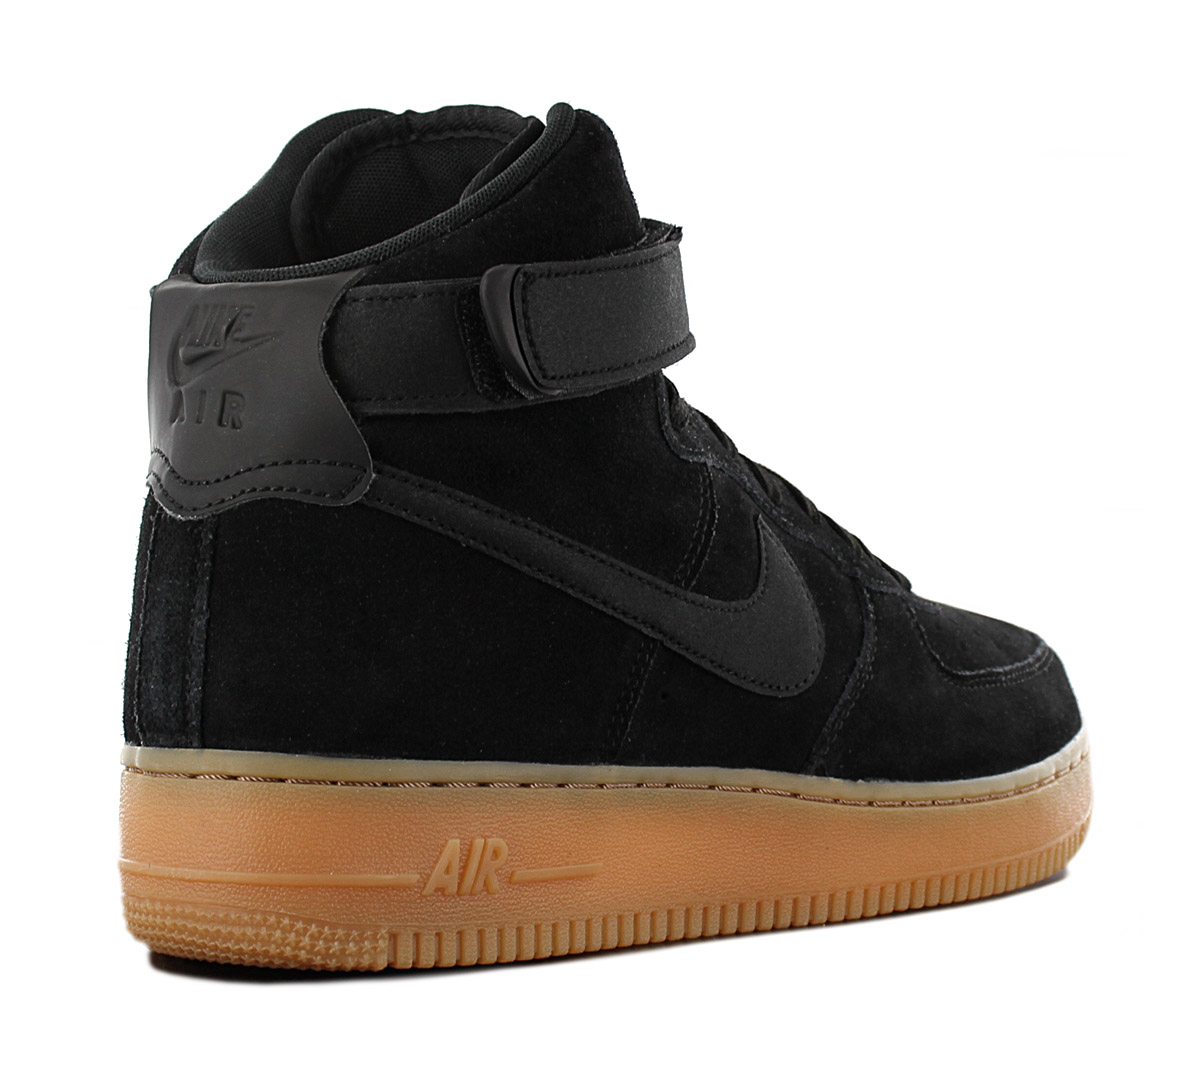 Details about Nike Air Force 1 High 07 LV8 Suede Leather Men's Sneaker Shoes AA1118 001 New